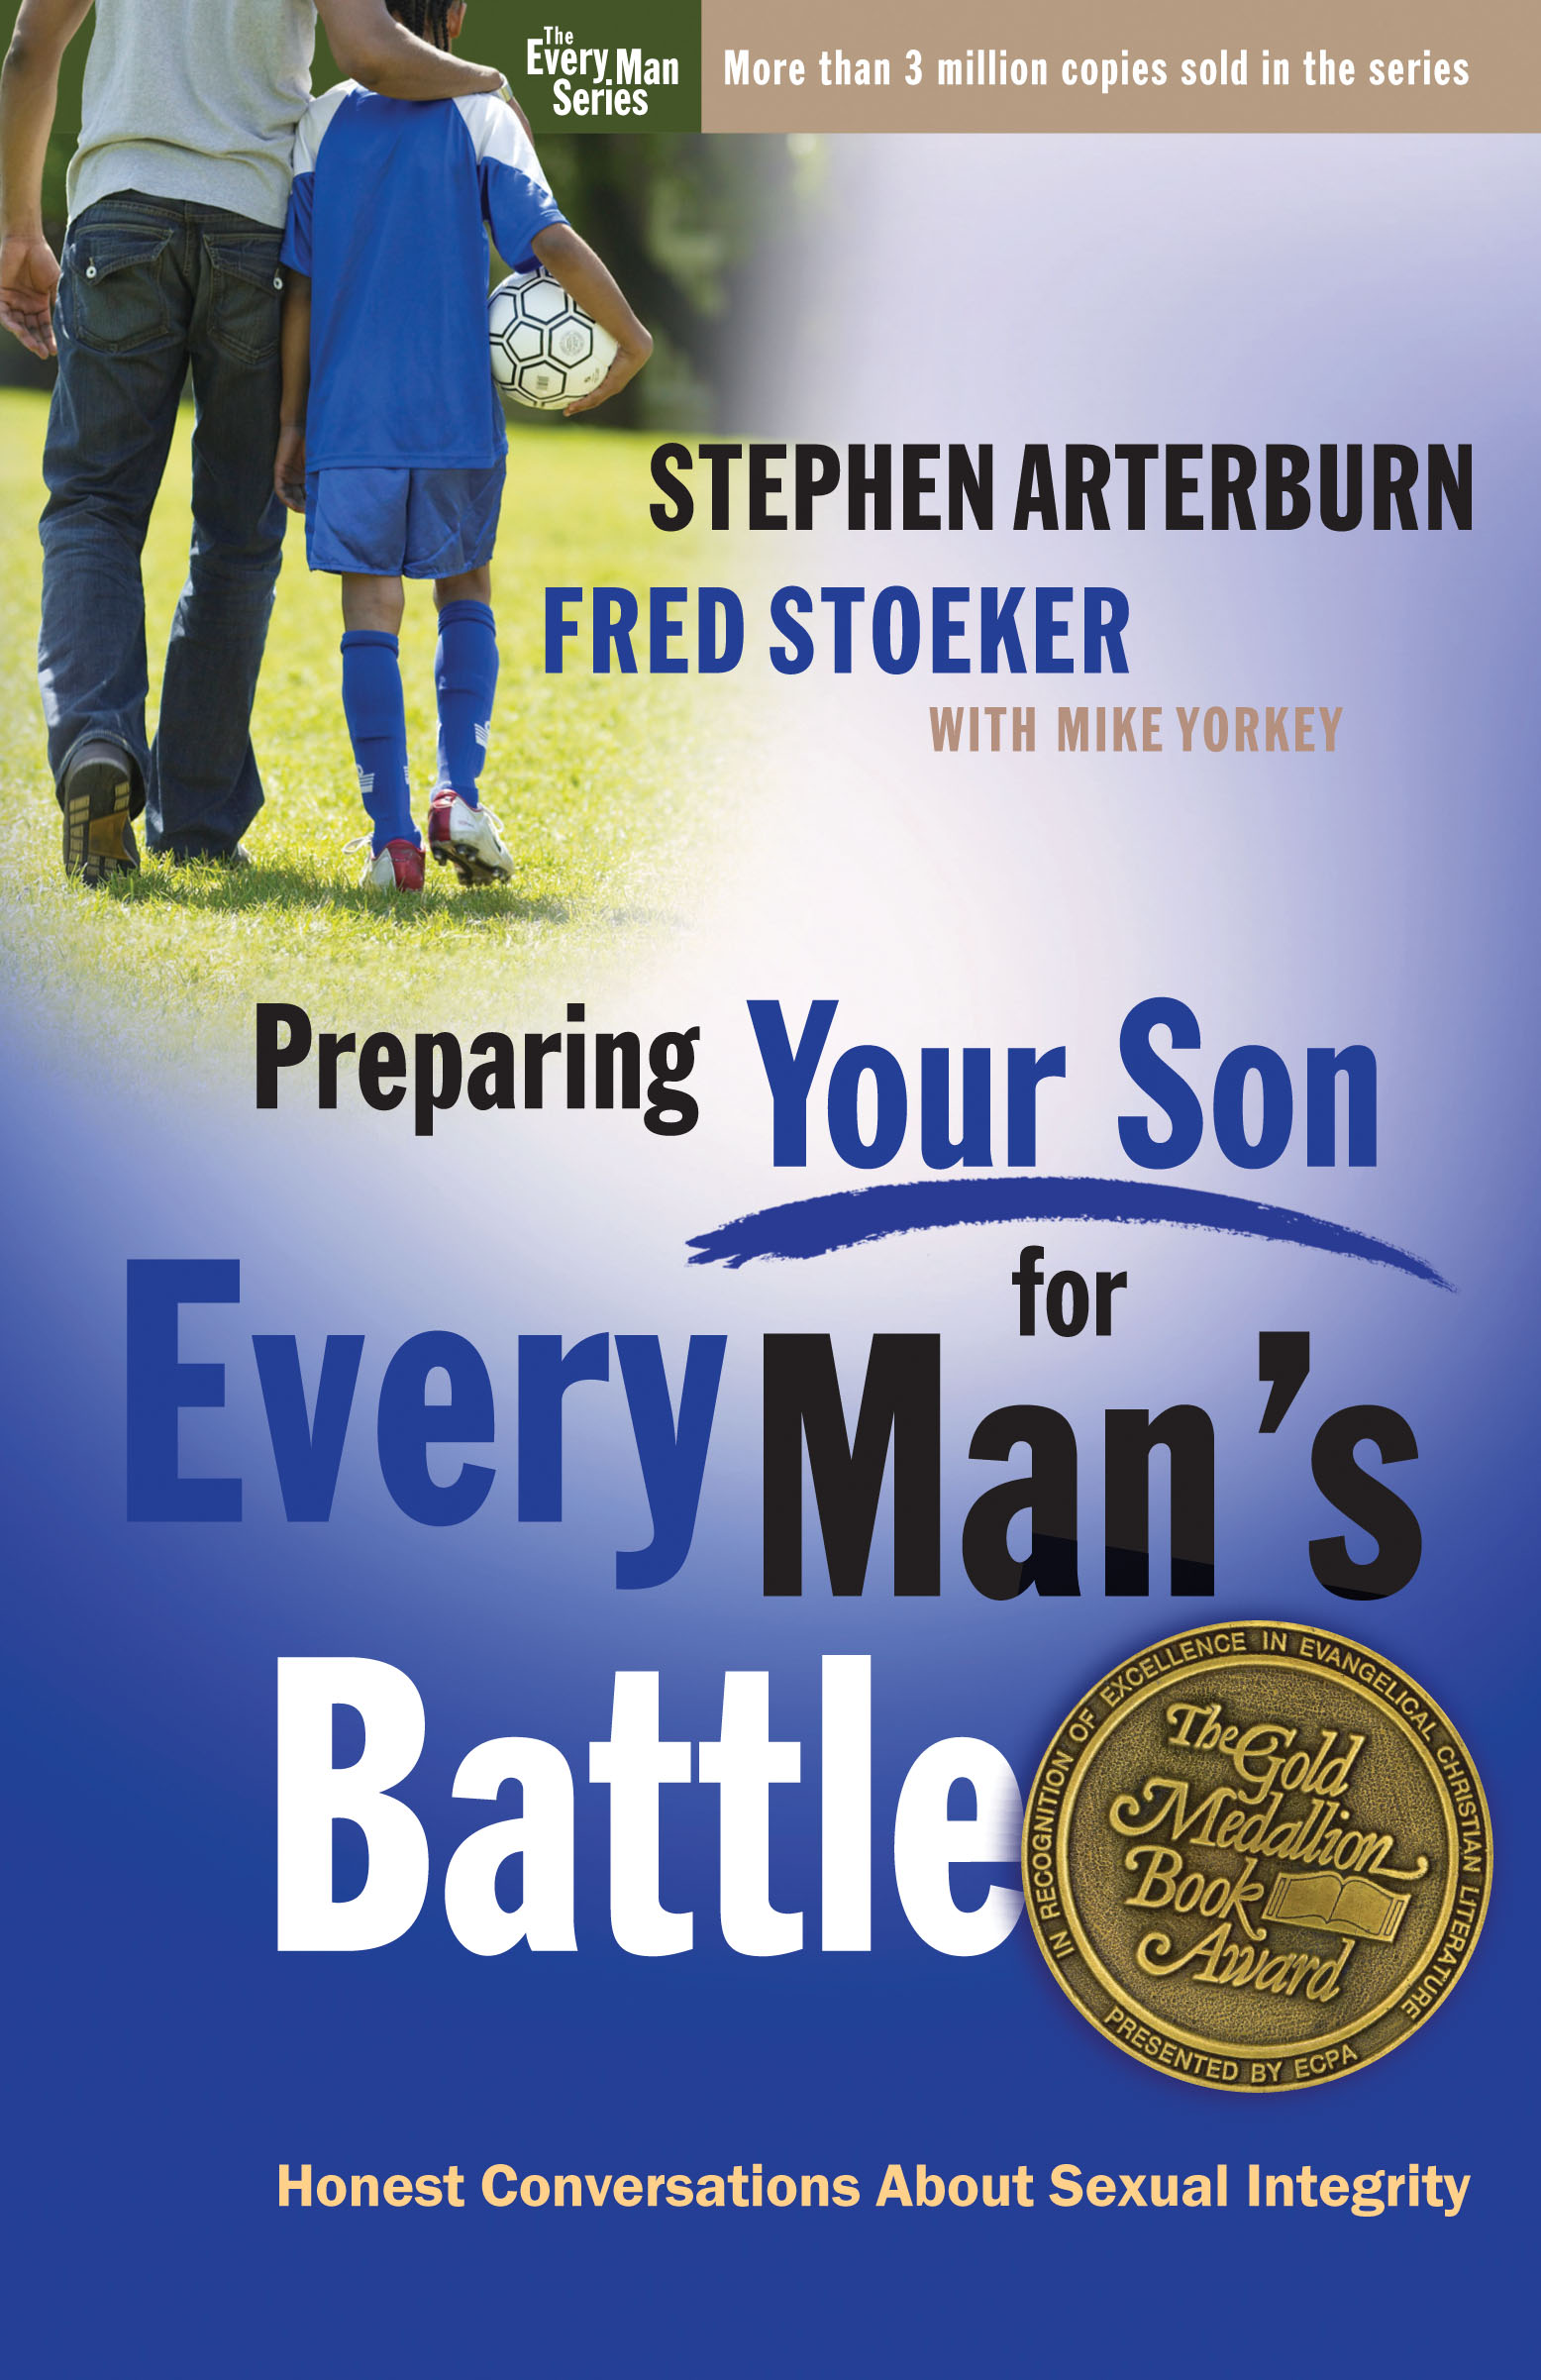 FRED STOEKER PREPARING YOUR SON FOR EVERY MANS BATTLE